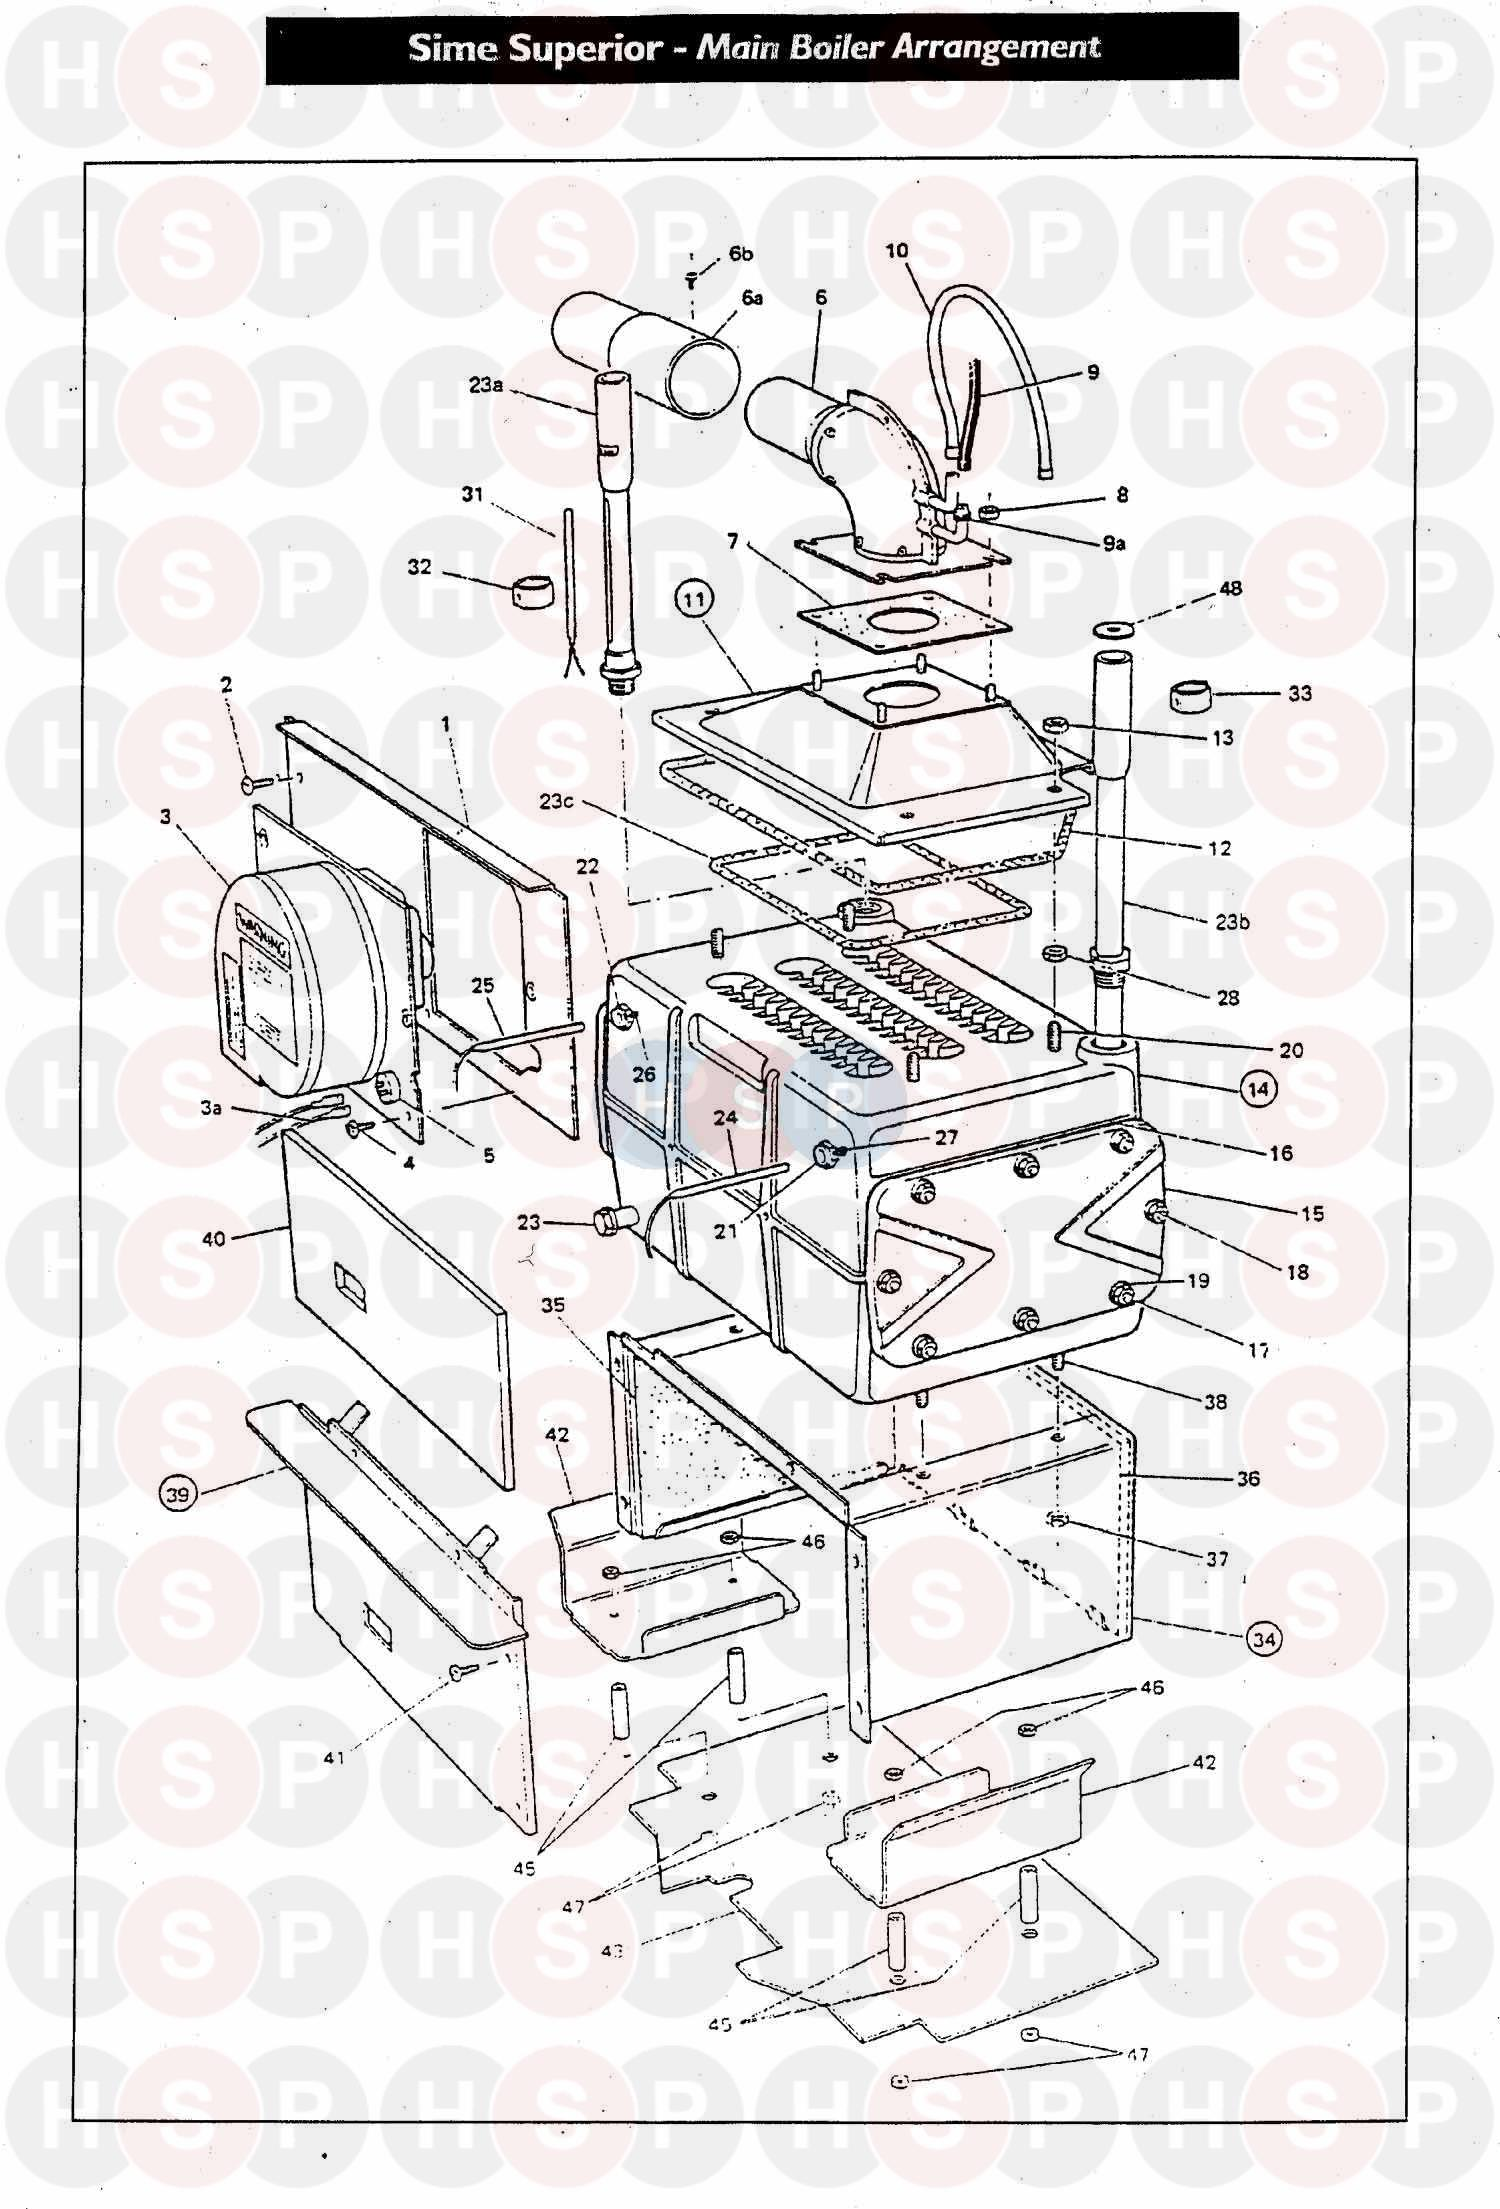 Sime superior mki 50 assembly 1 diagram heating spare parts assembly 1 diagram for sime superior mki 50 swarovskicordoba Gallery